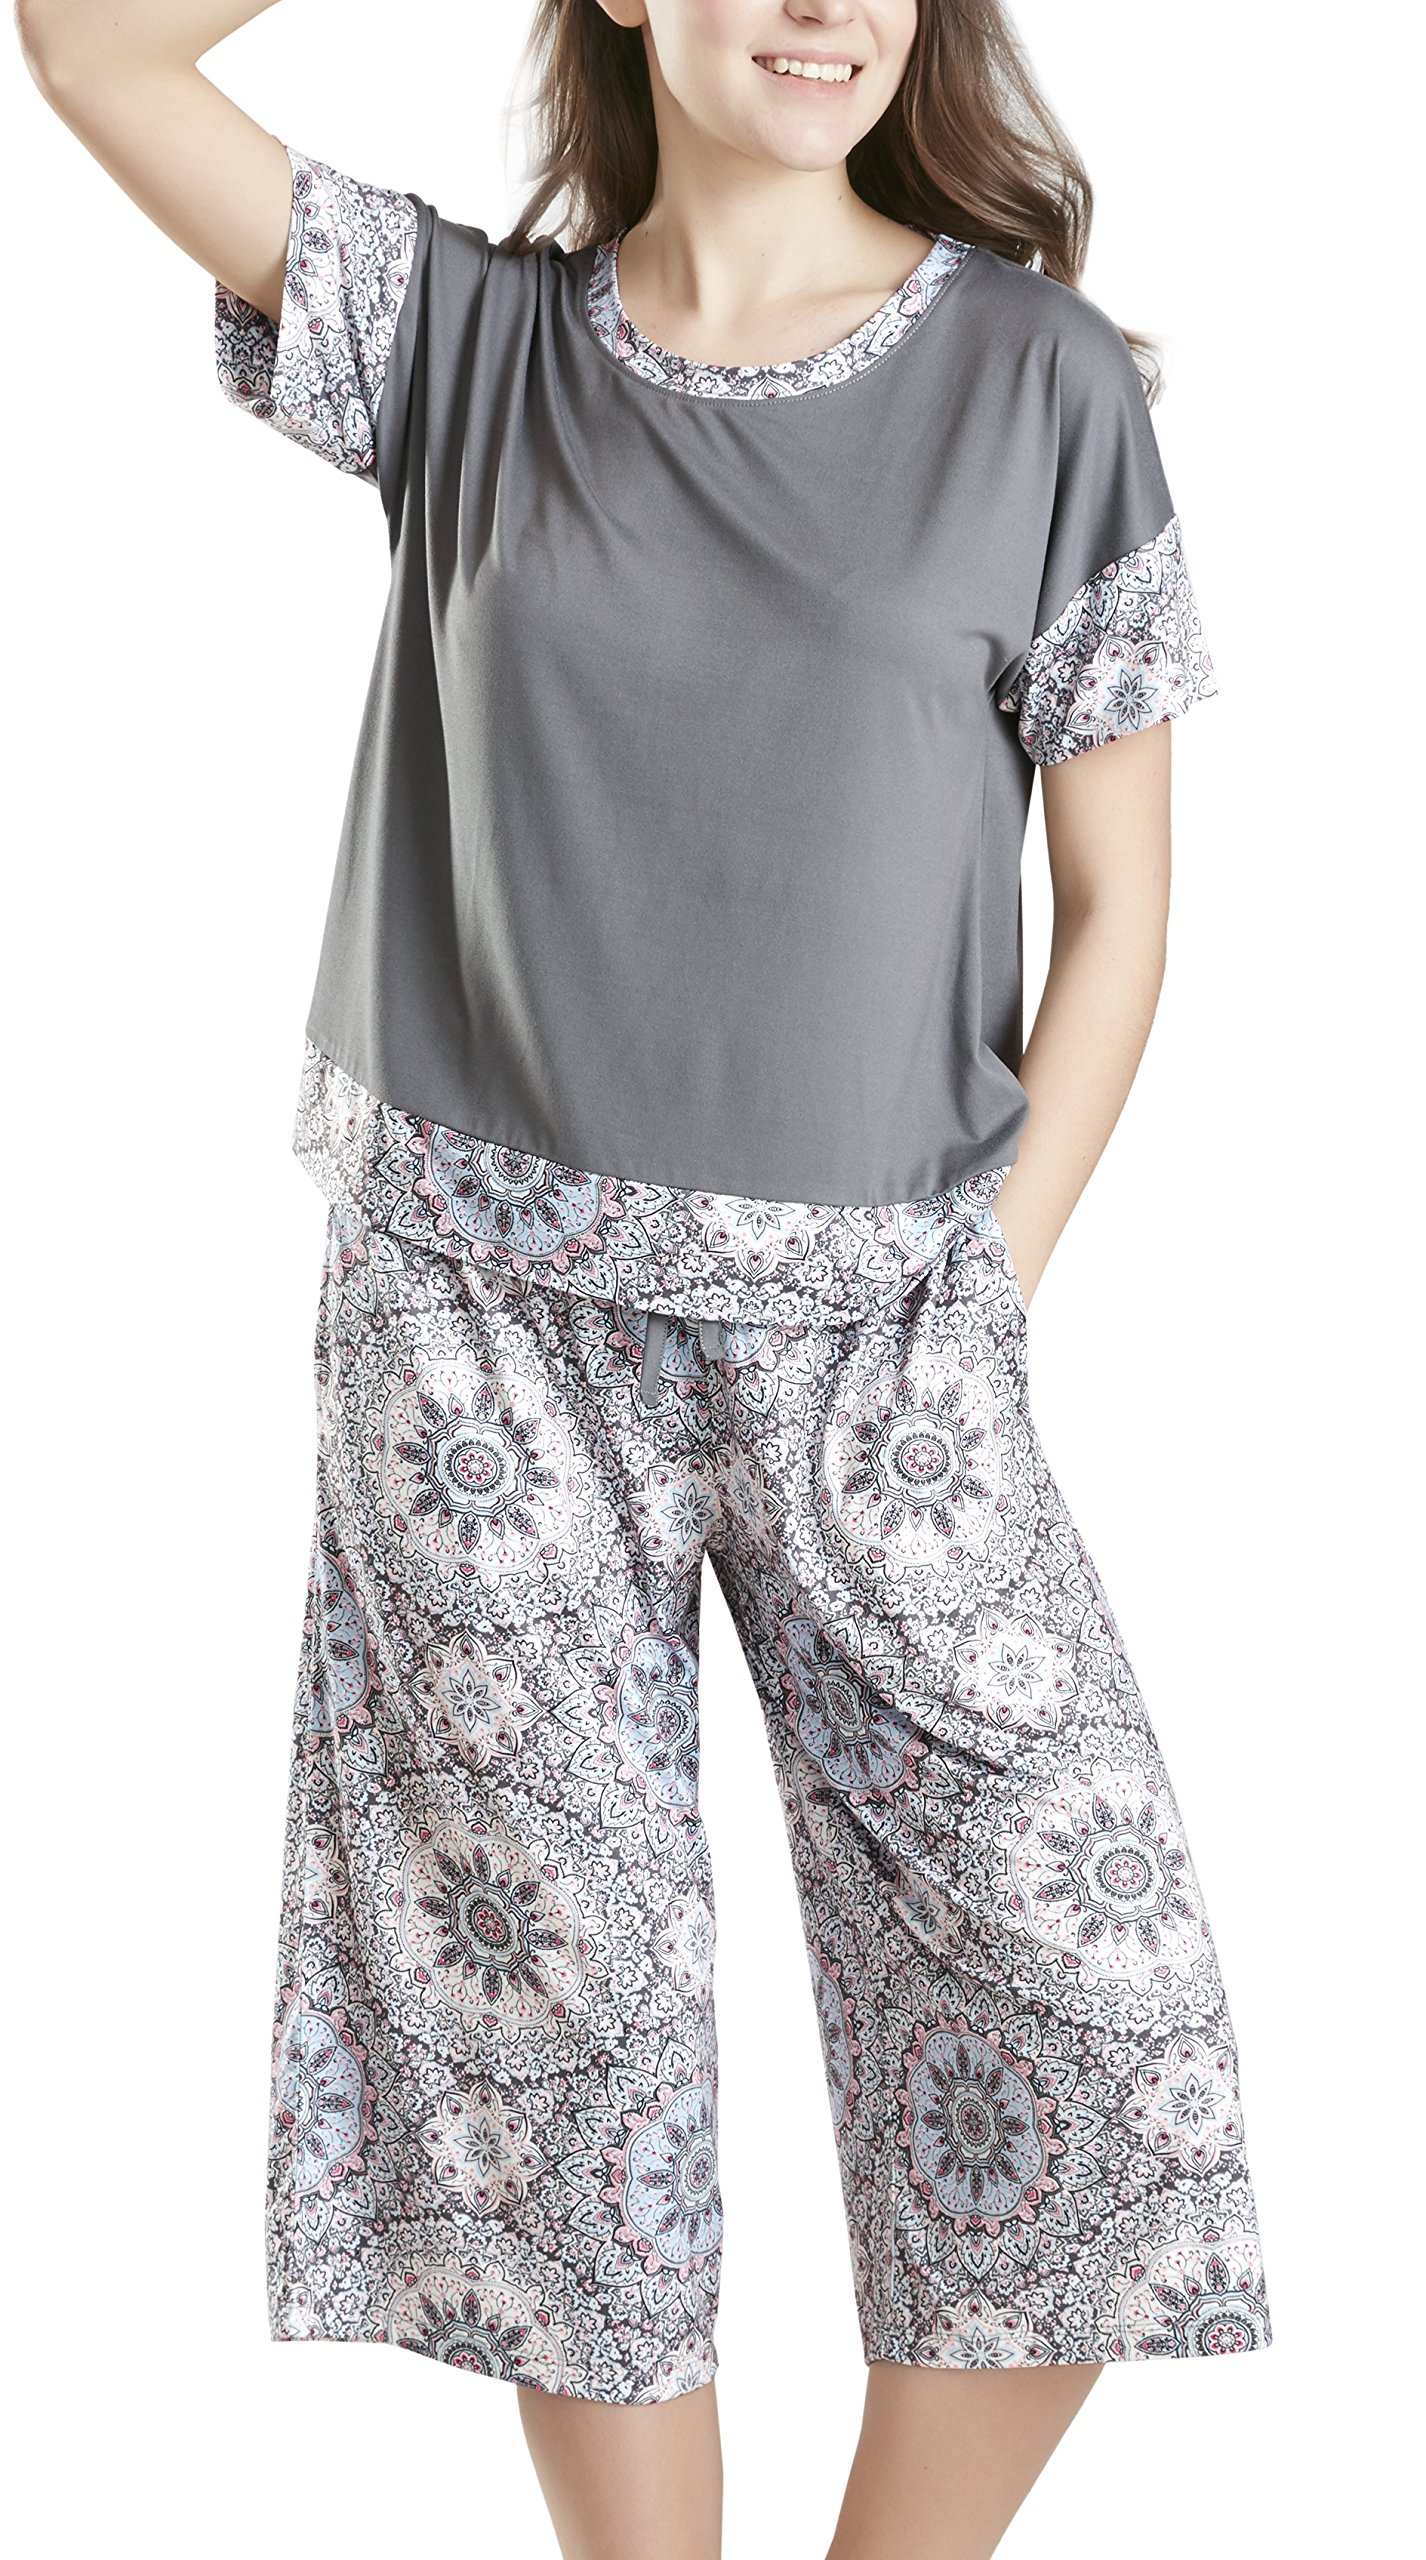 Summer Pajamas for Women, Stylish Print Ladies Pajama Set - Day Dream Oversized Shirt and Capri Lounge Pants XX Large